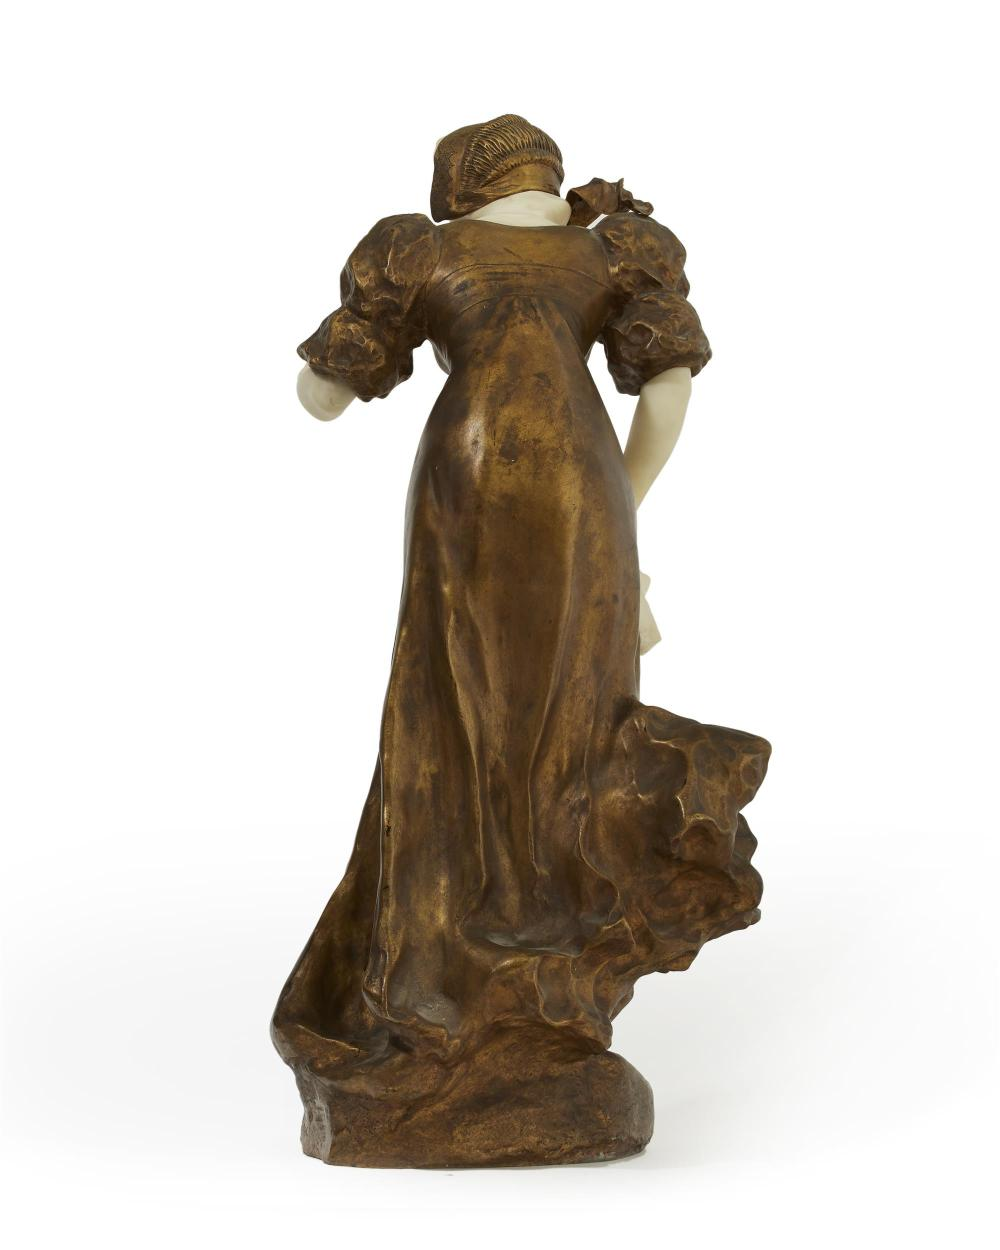 Affortunato (Fortunato) Gory, (1895-1925 Italian/French), Walking lady, Gilt-bronze and alabaster, 27.5